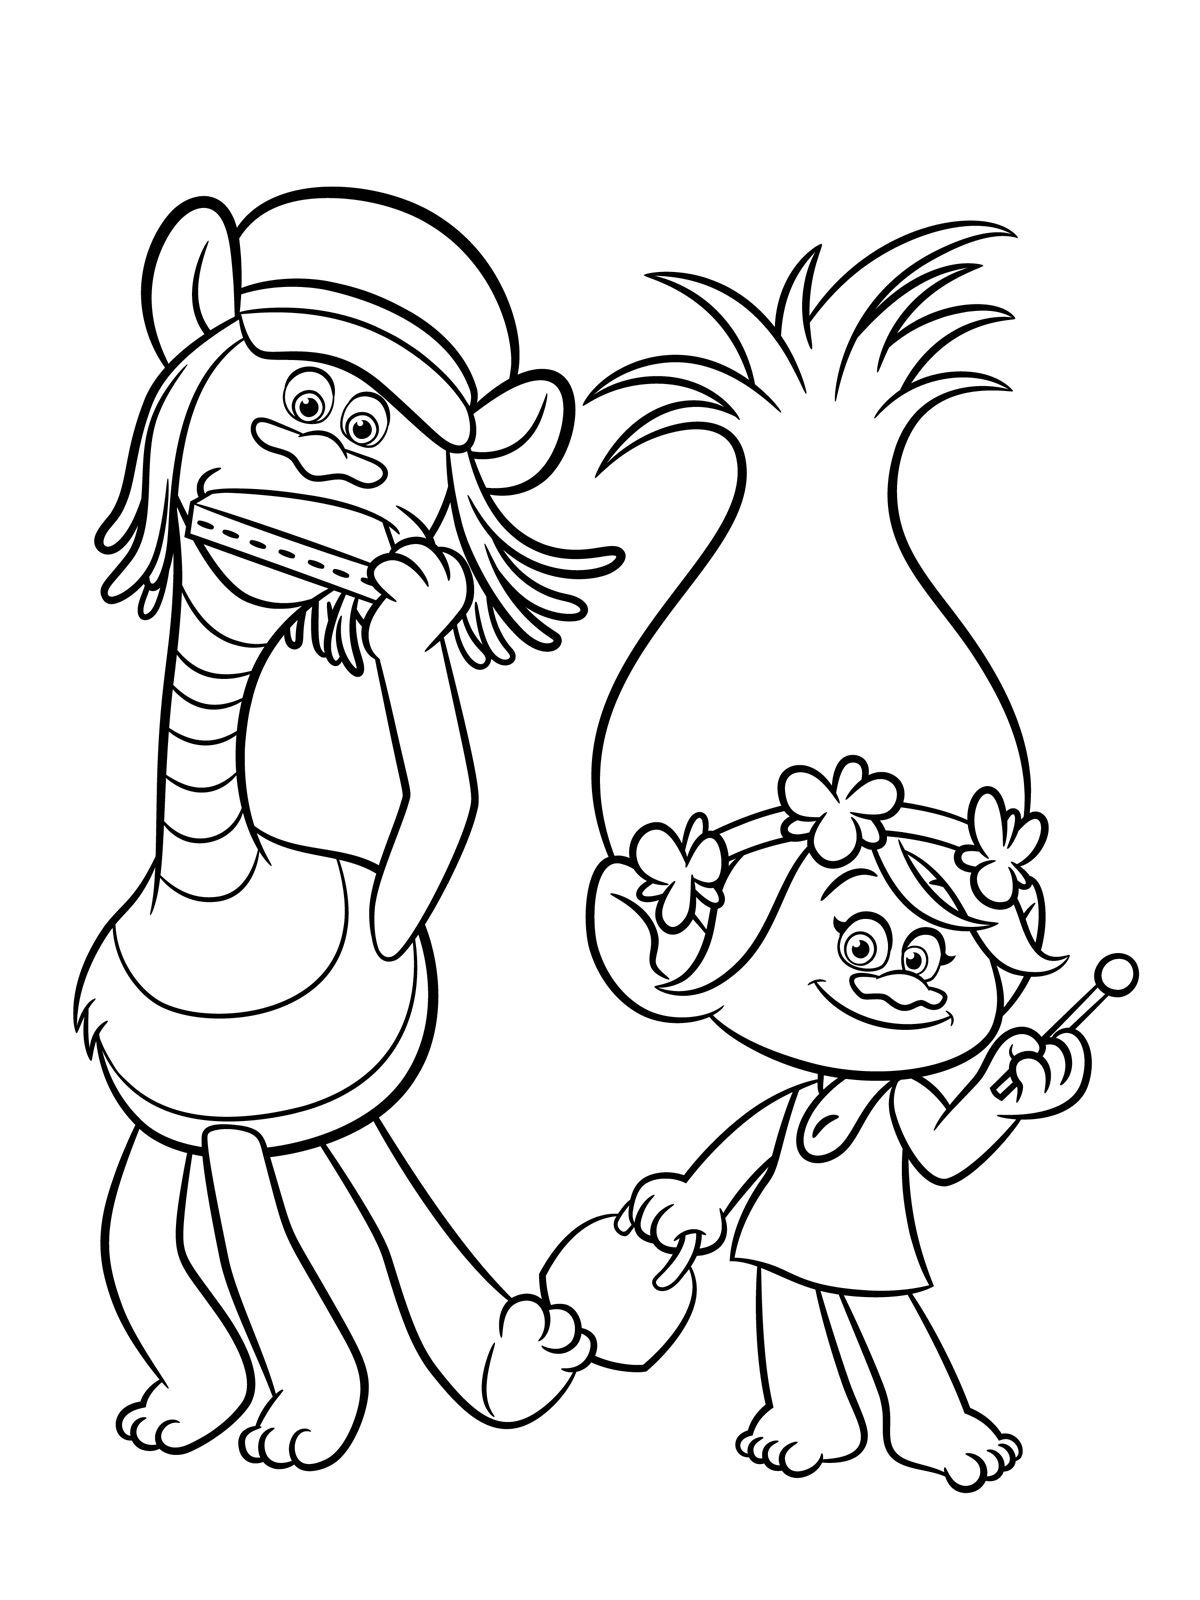 color sheets for kids free fish coloring pages for kids for kids color sheets